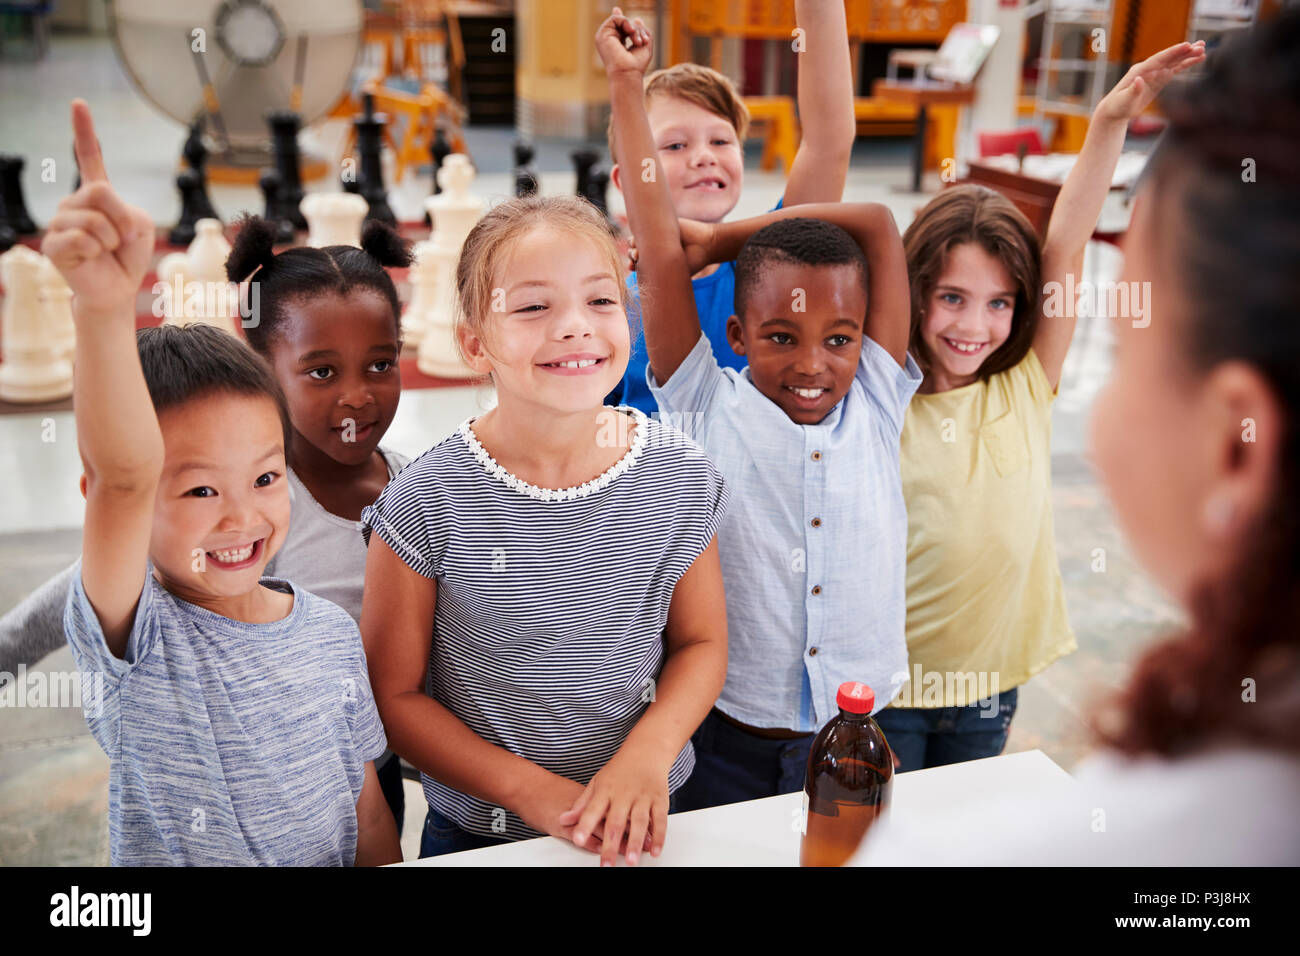 Group of kids volunteering to answer teacher's question - Stock Image